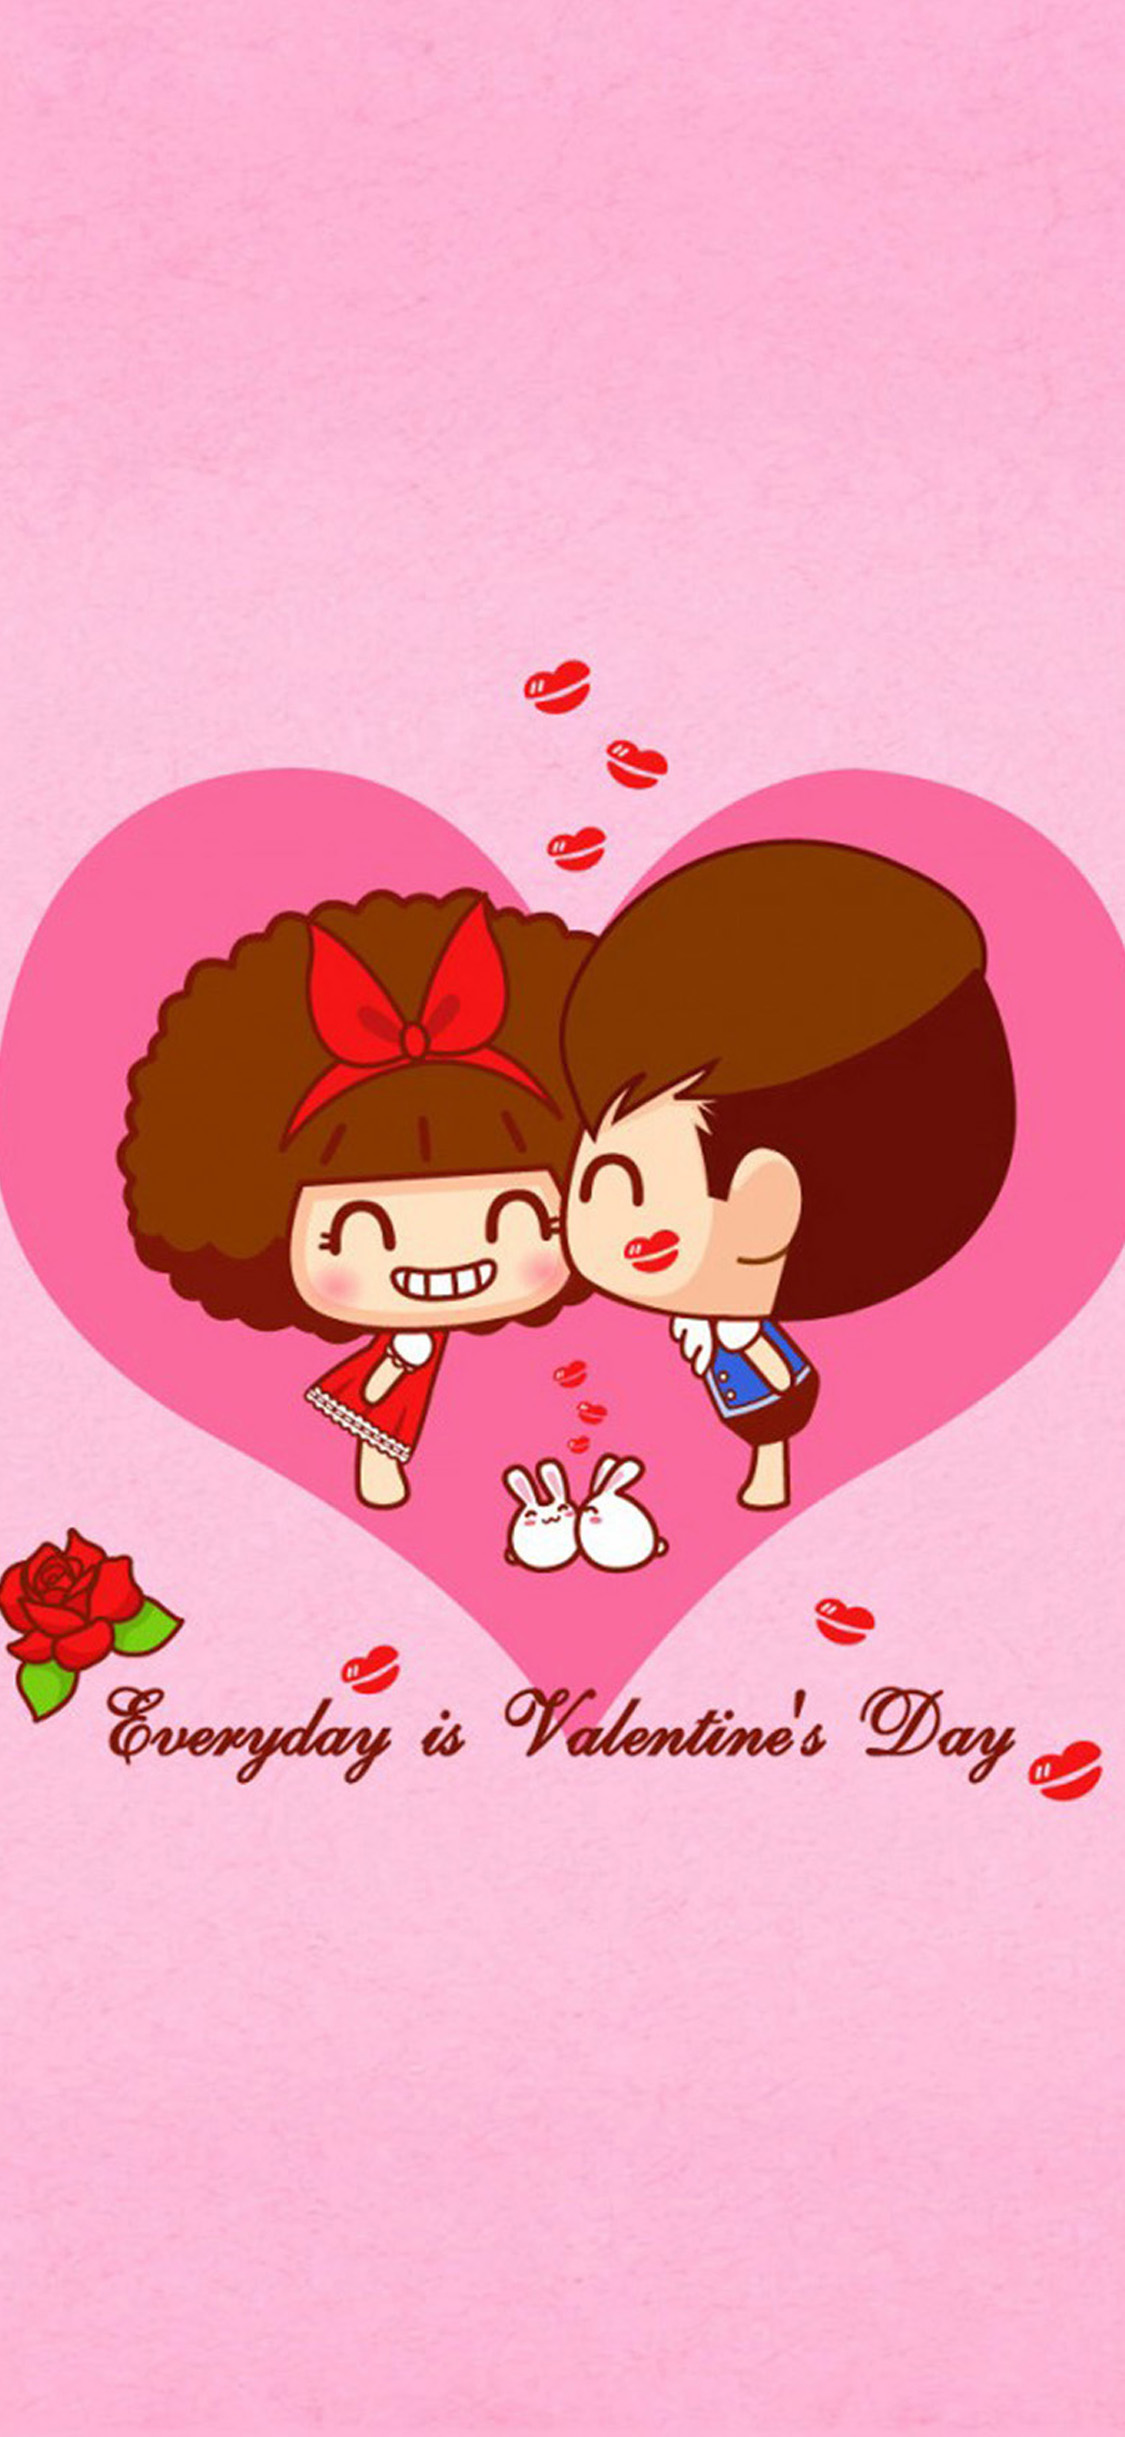 1125x2437 Happy Valentines Day iPhone X2 Wallpapers Download ...